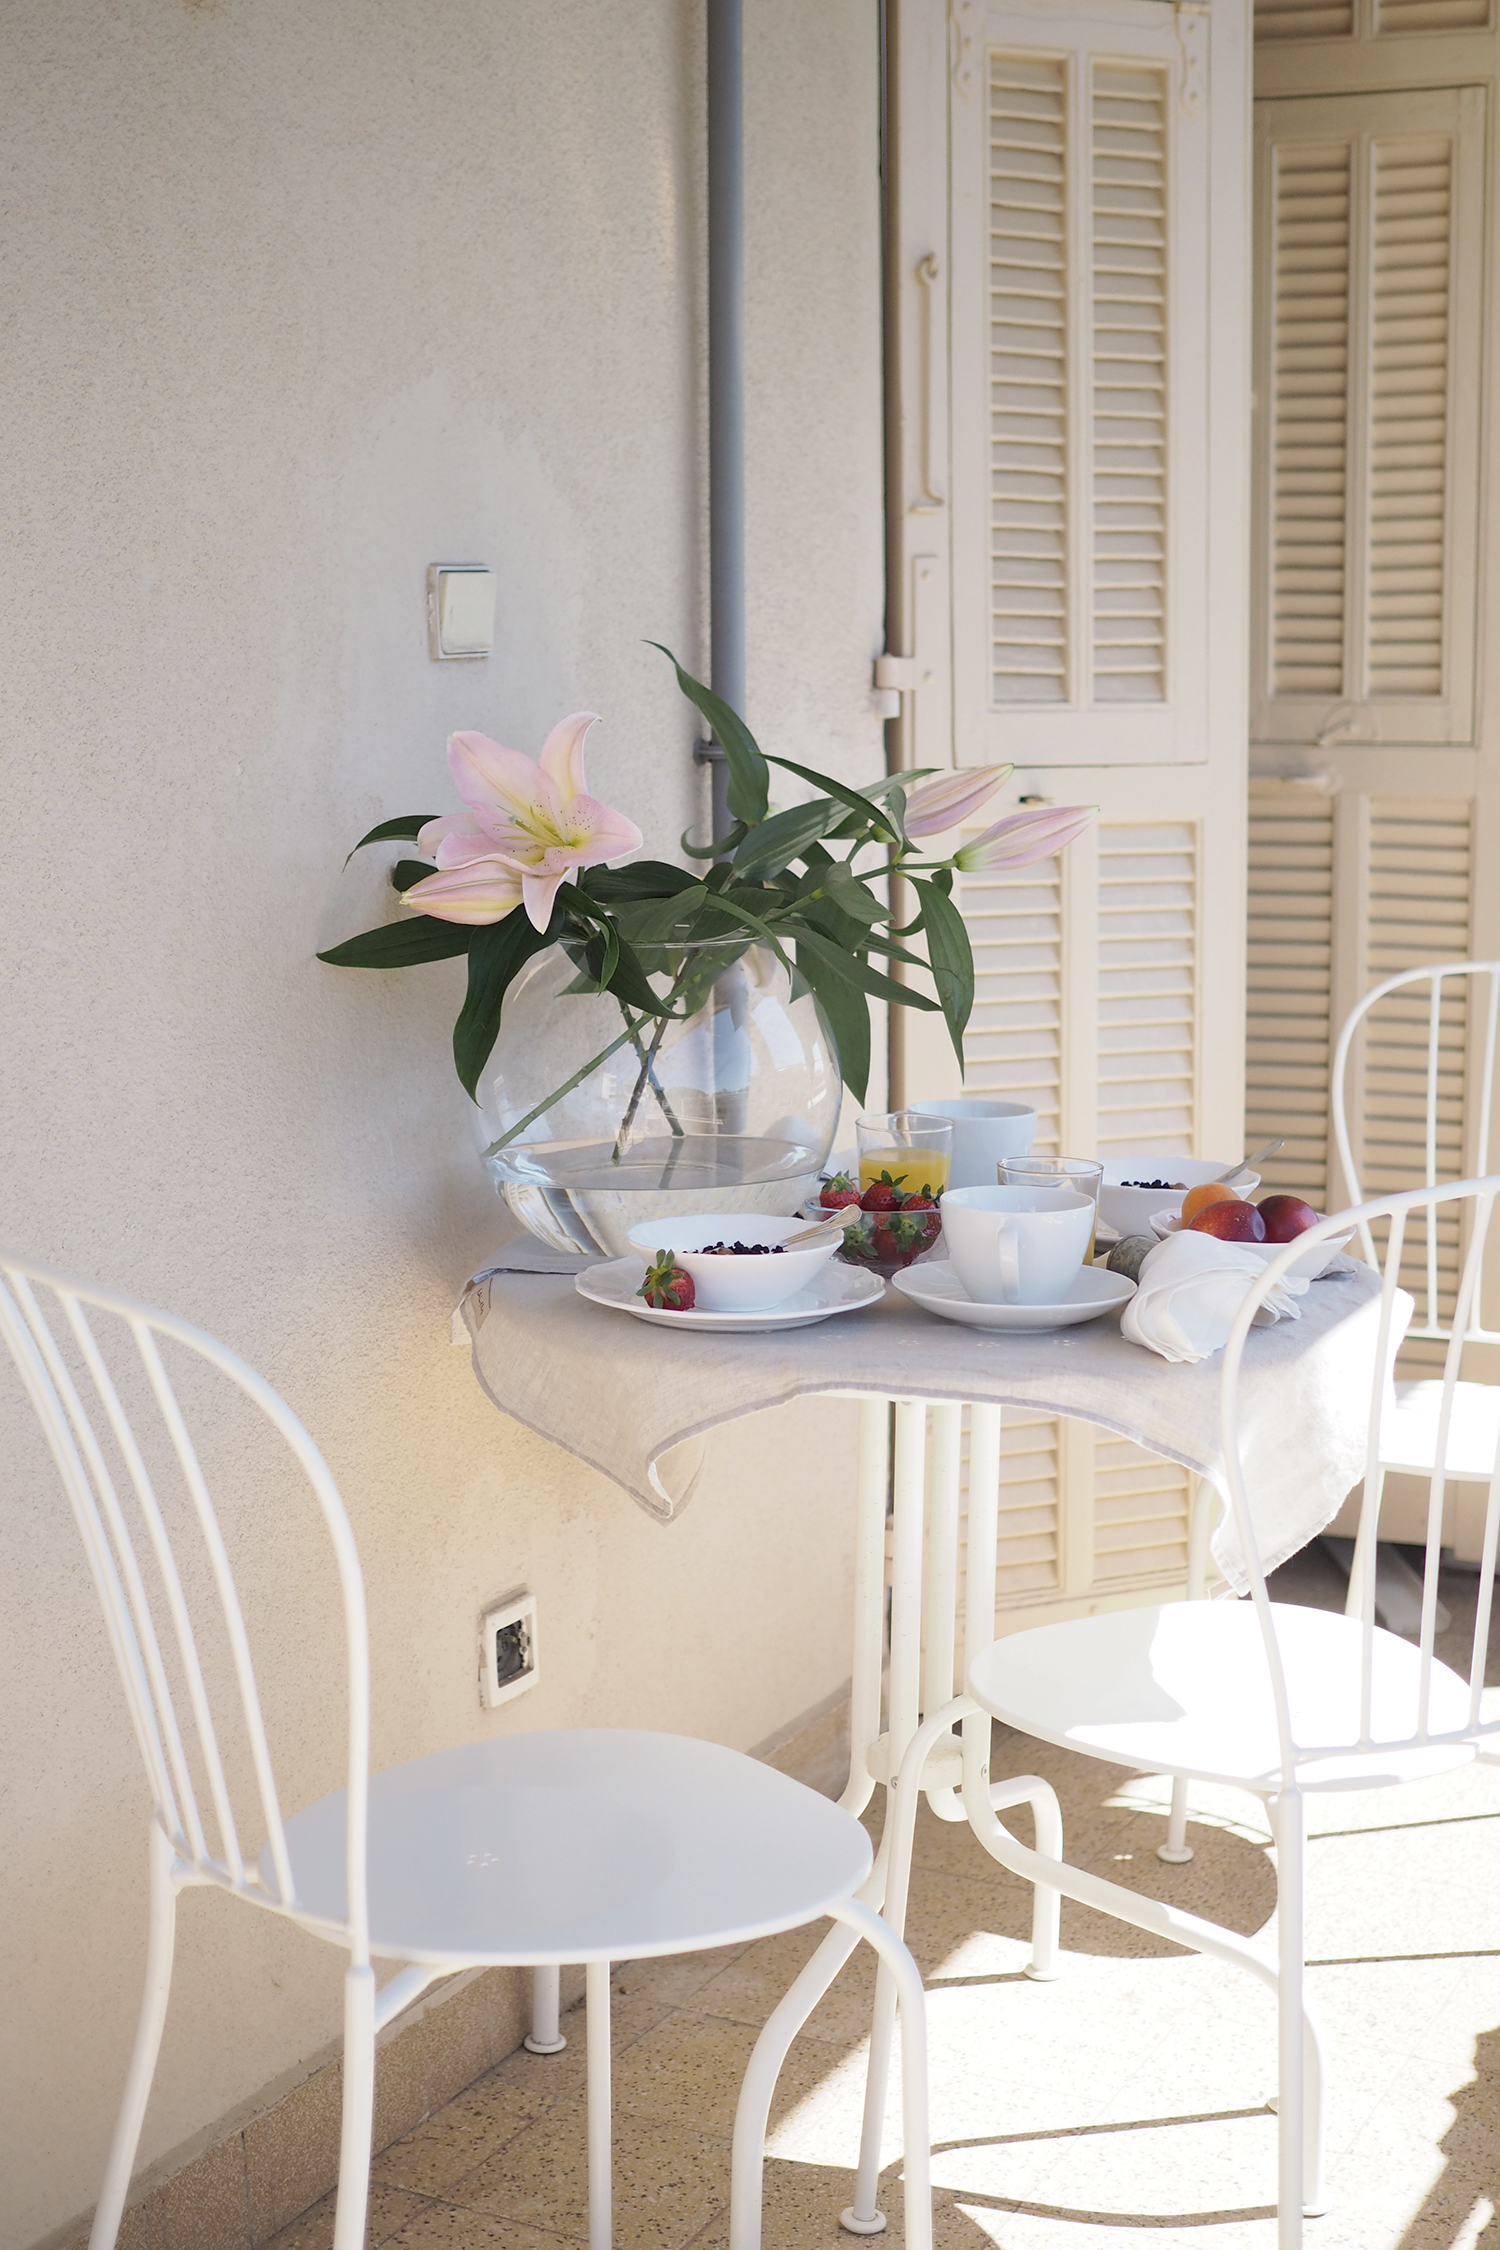 Char and the city - Breakfast on the terrace in Villefranche-sur-Mer, Nice, France